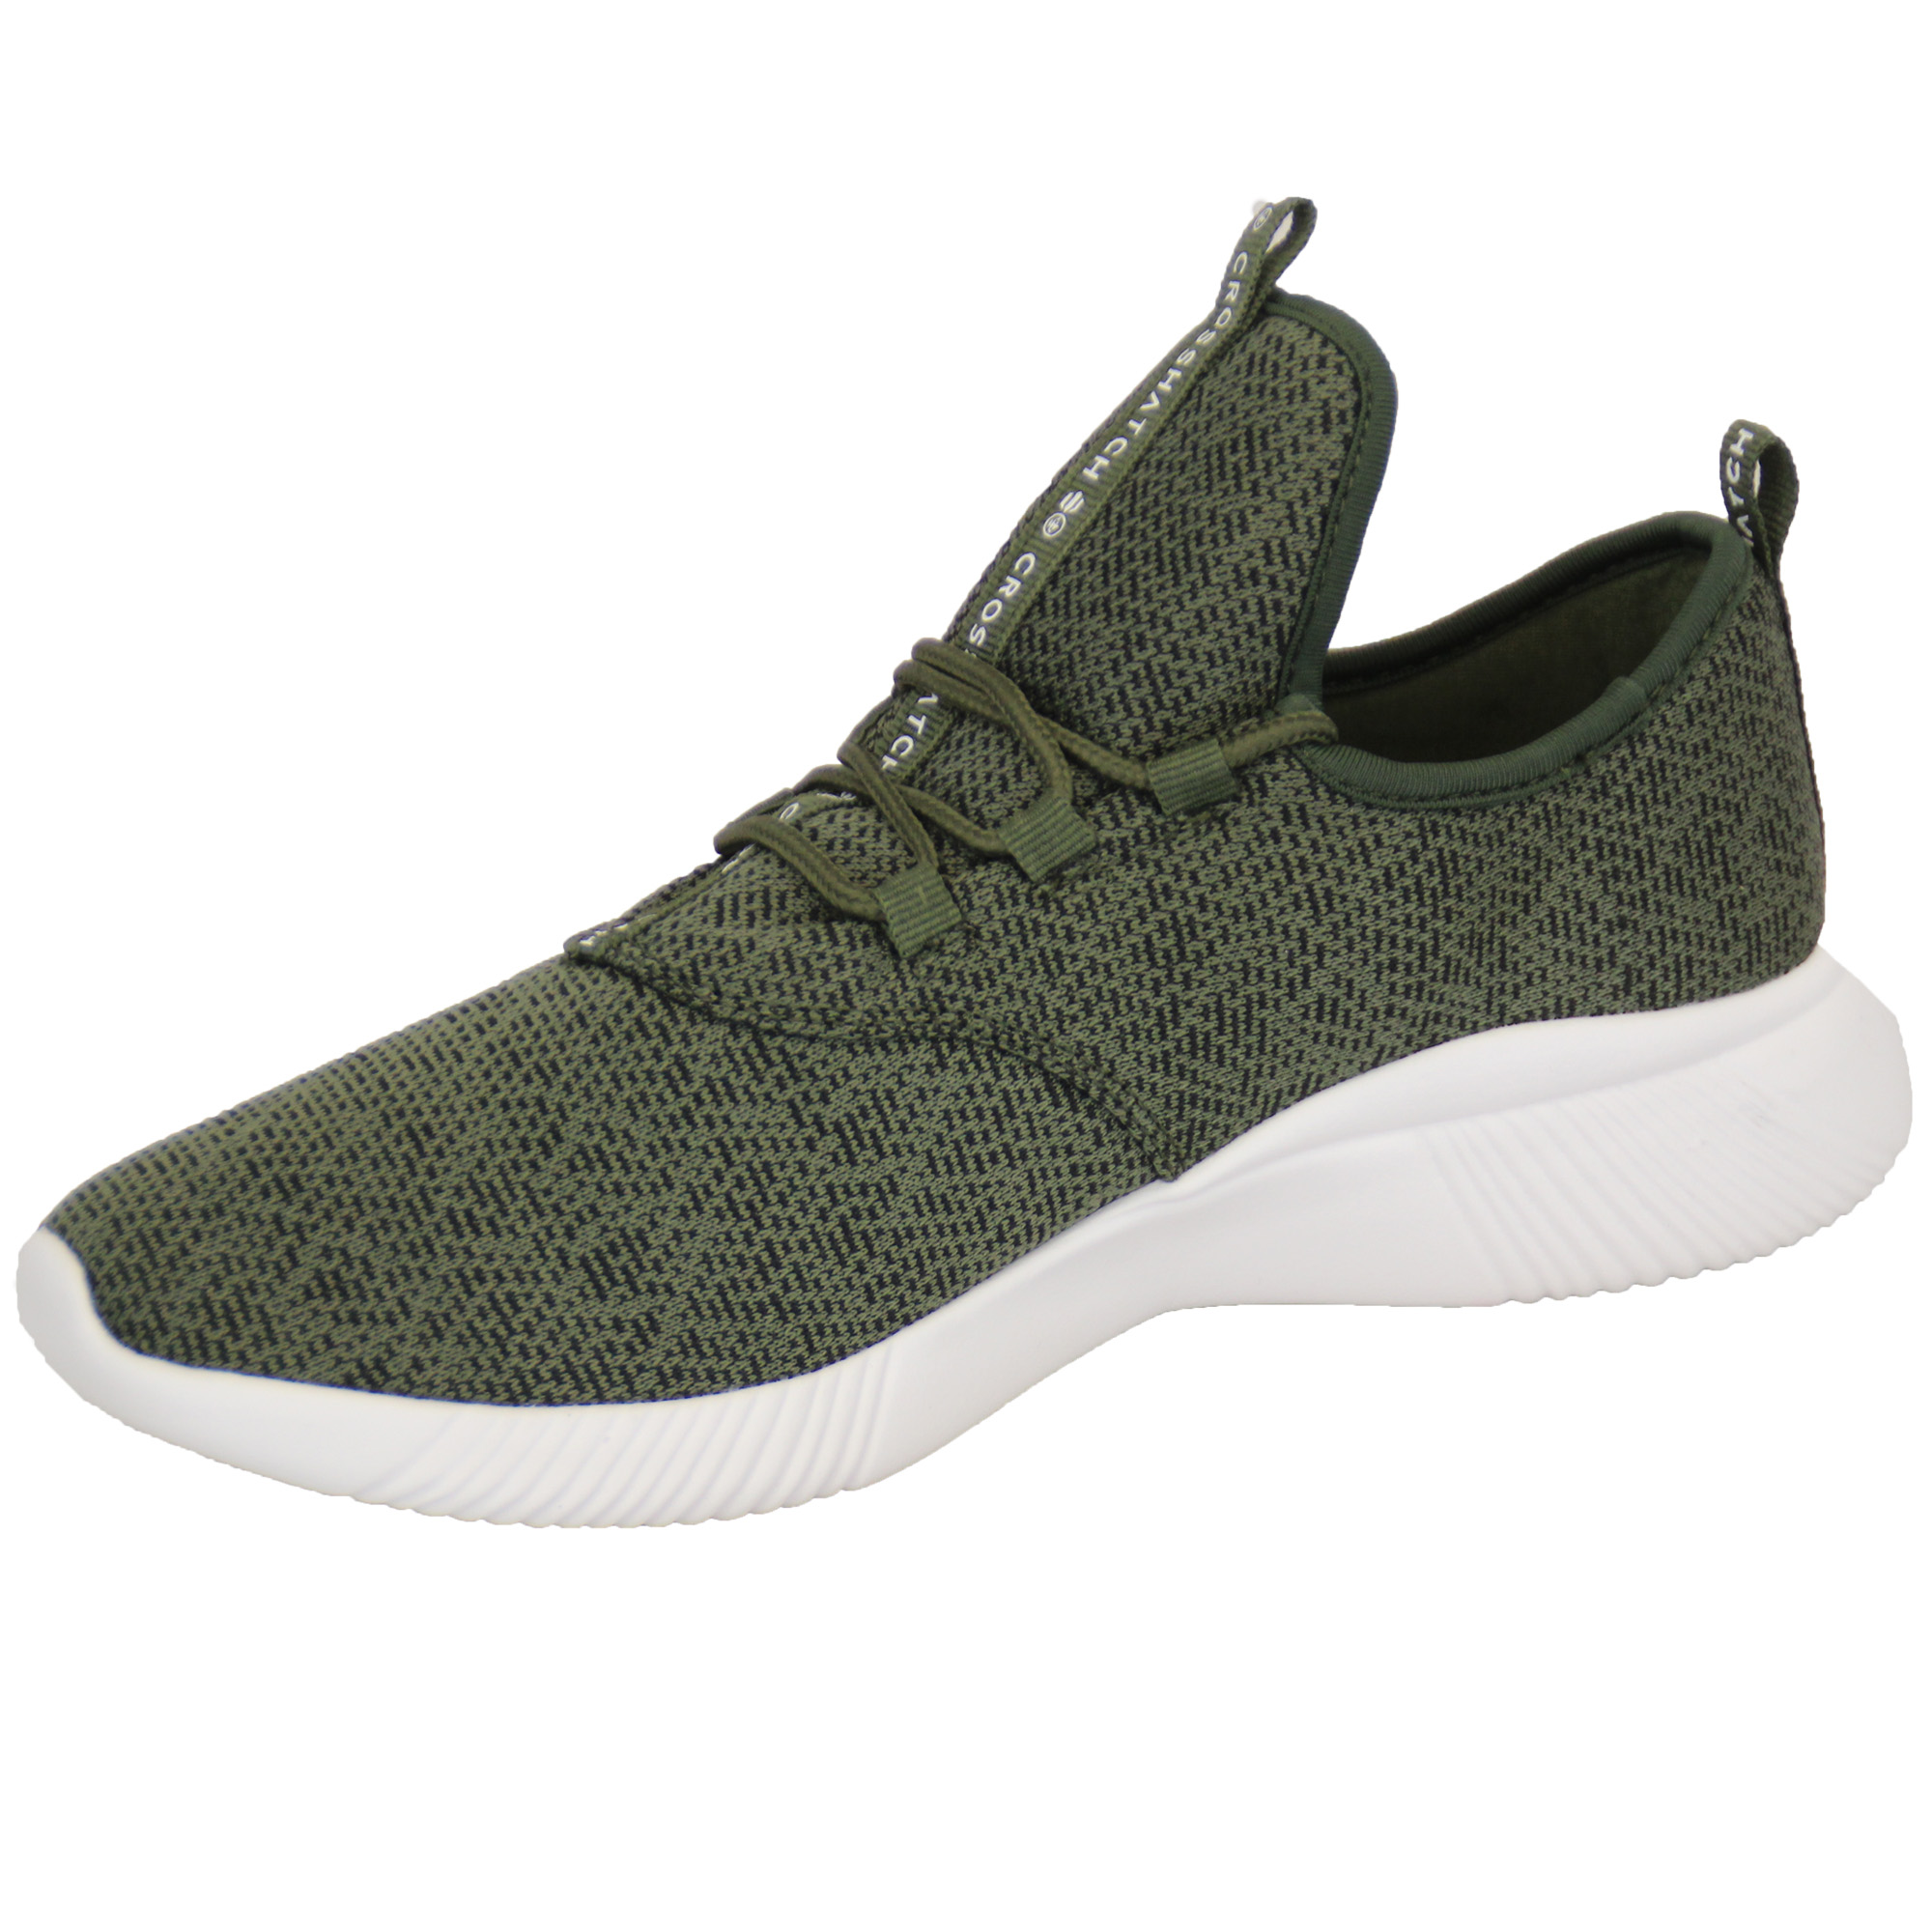 Mens-Trainers-Crosshatch-Running-Speed-Lace-Up-Knit-Mesh-Sports-Gym-Shoes-Casual thumbnail 6